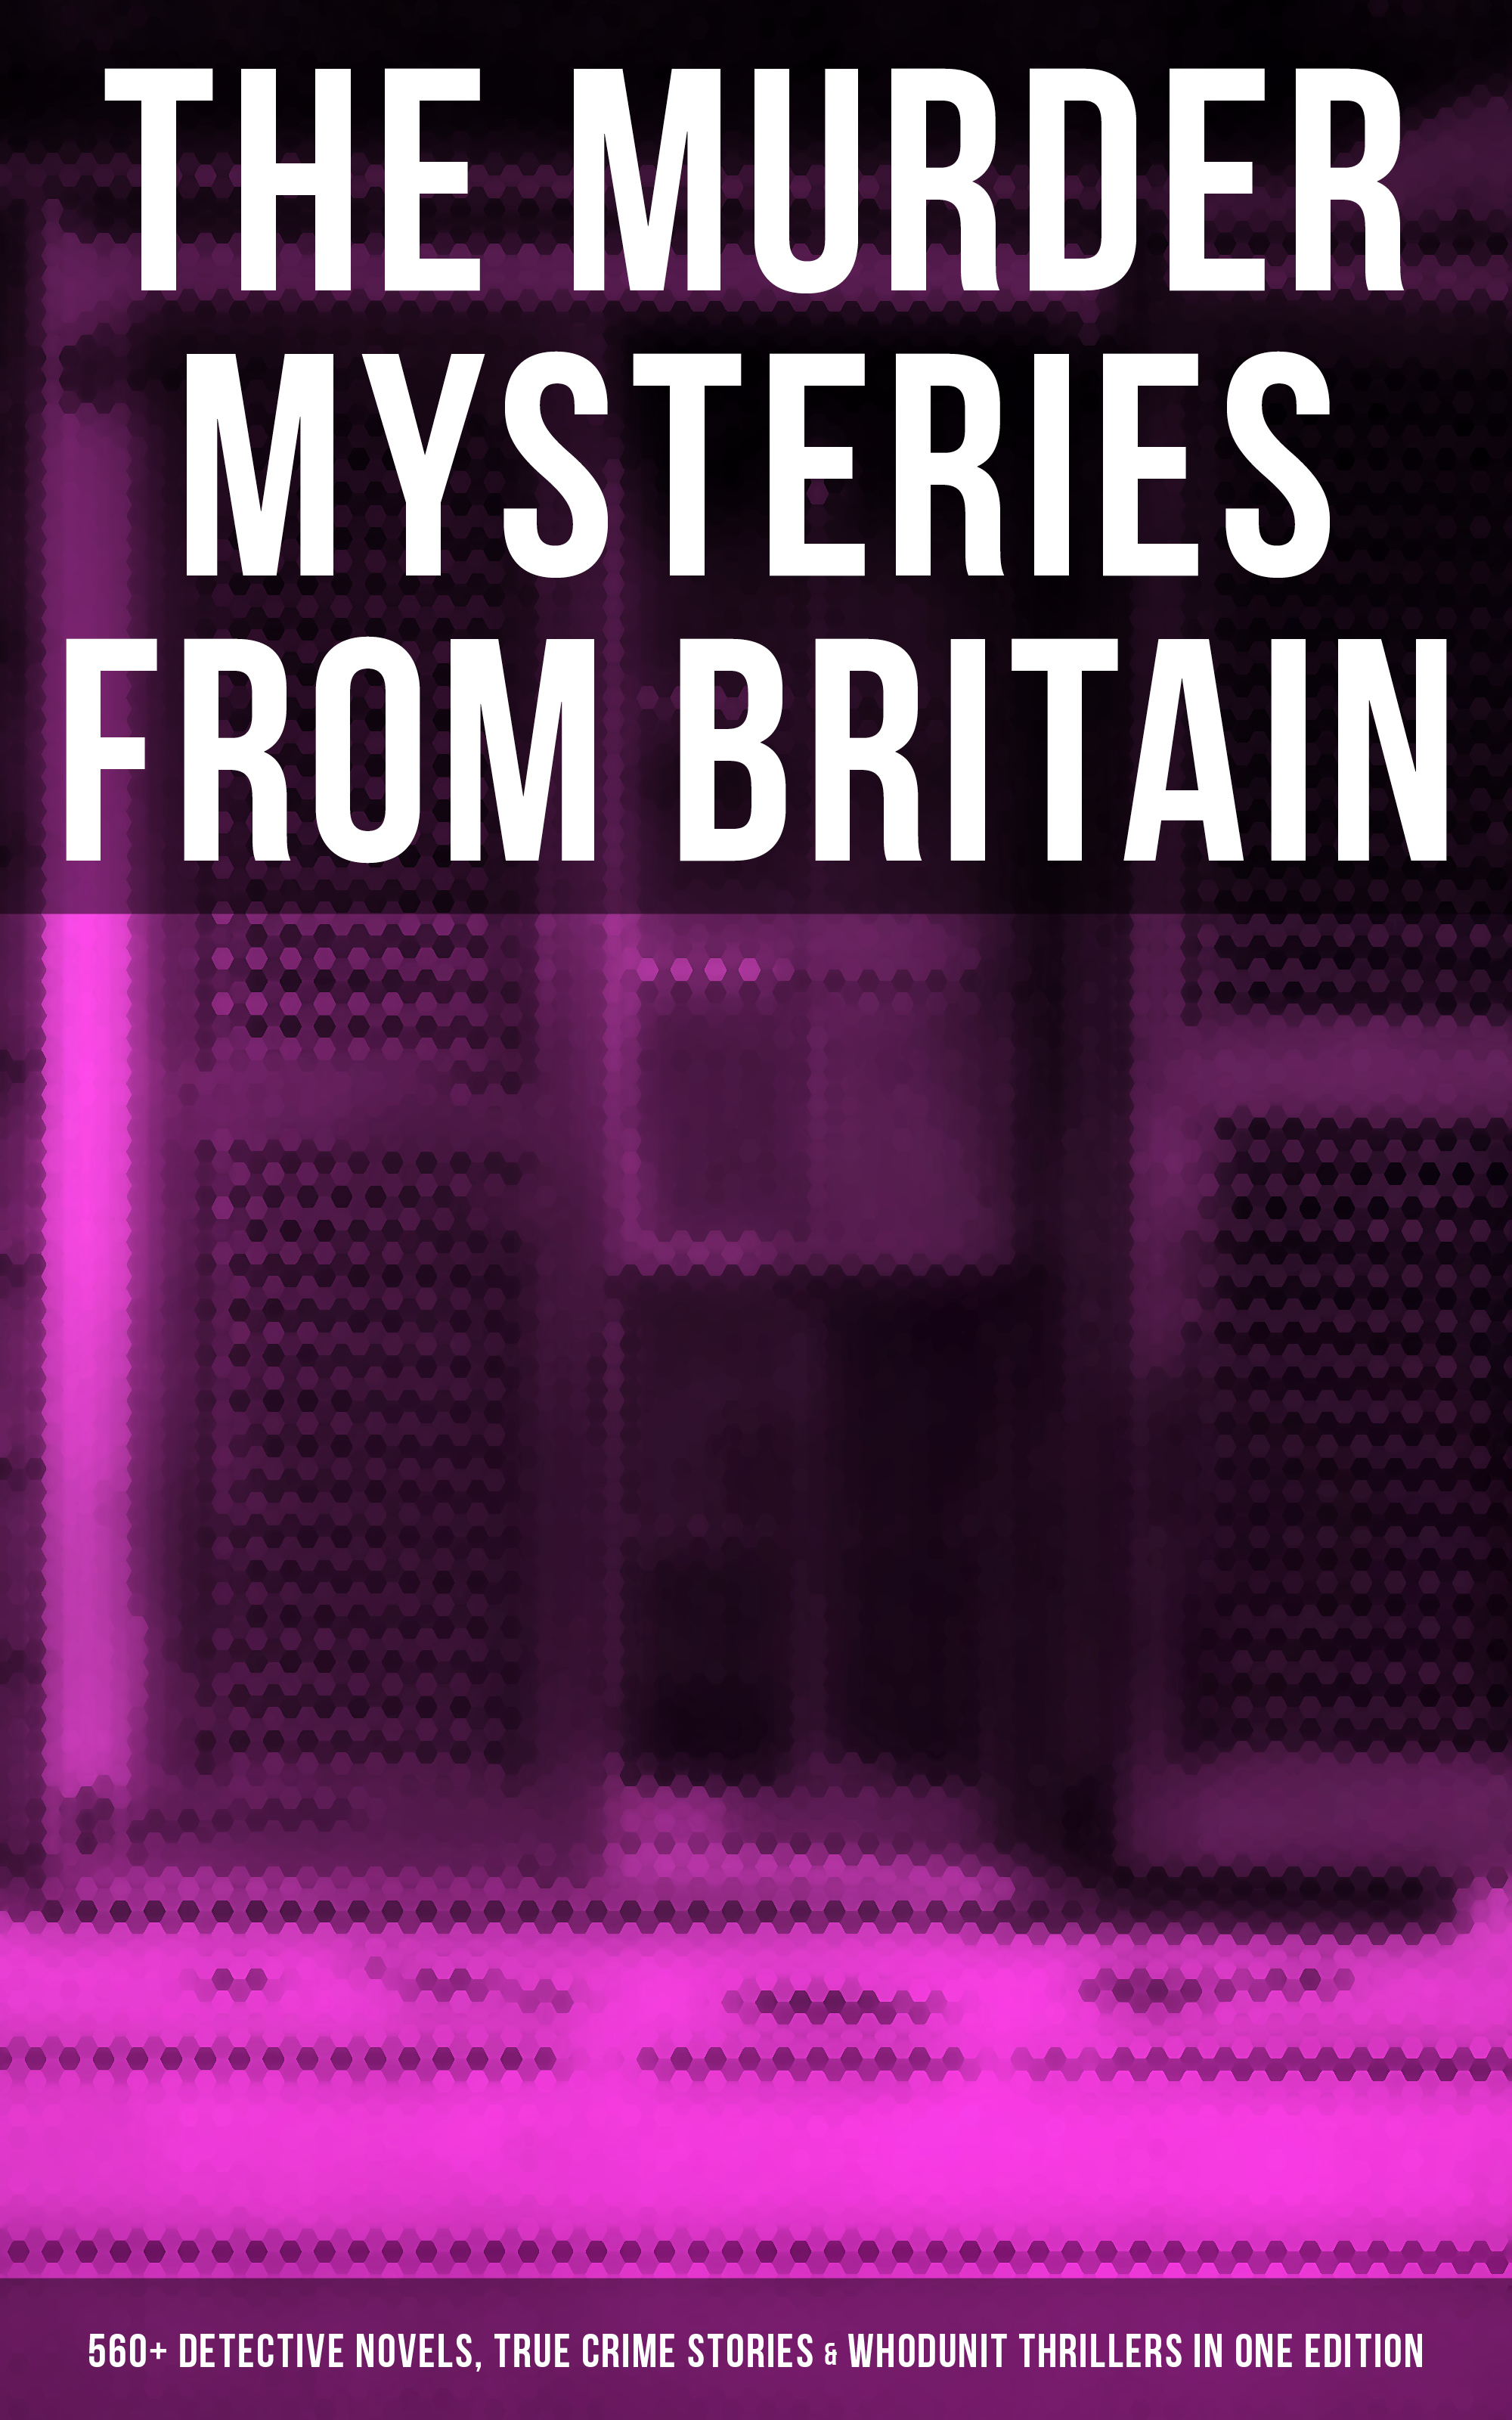 Гилберт Кит Честертон THE MURDER MYSTERIES FROM BRITAIN - 560+ Detective Novels, True Crime Stories & Whodunit Thrillers in One Edition anna katharine green the mysteries of violet strange complete whodunit series in one edition